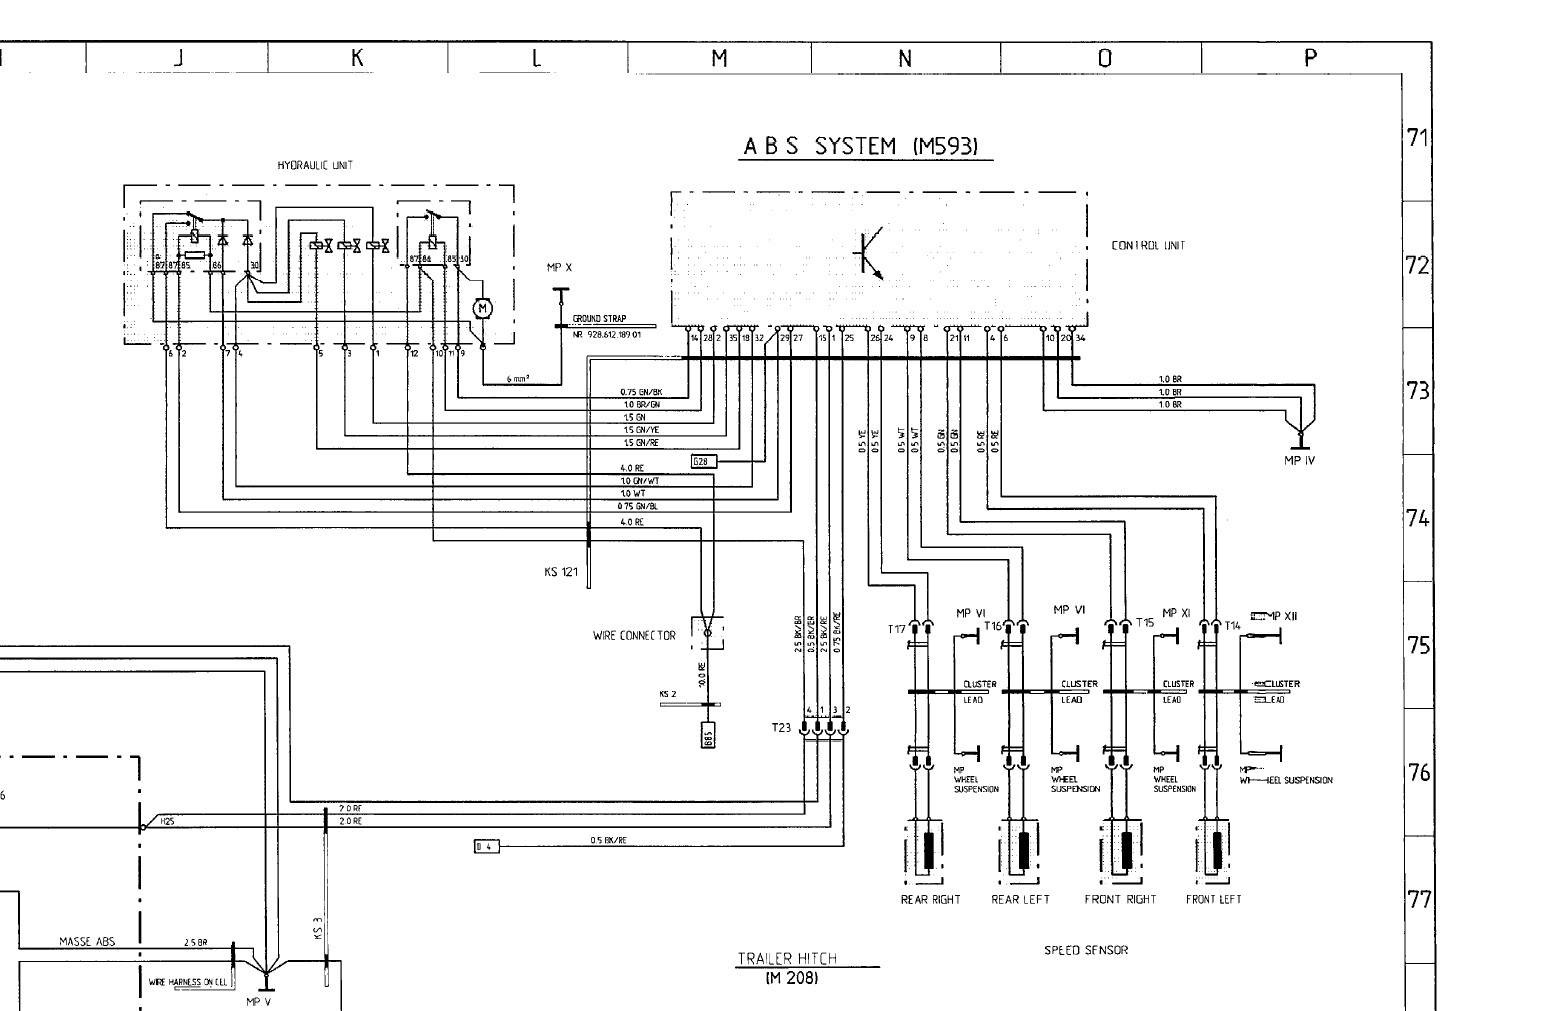 1983 Porsche 928s Wiring Diagram - Wiring Source •